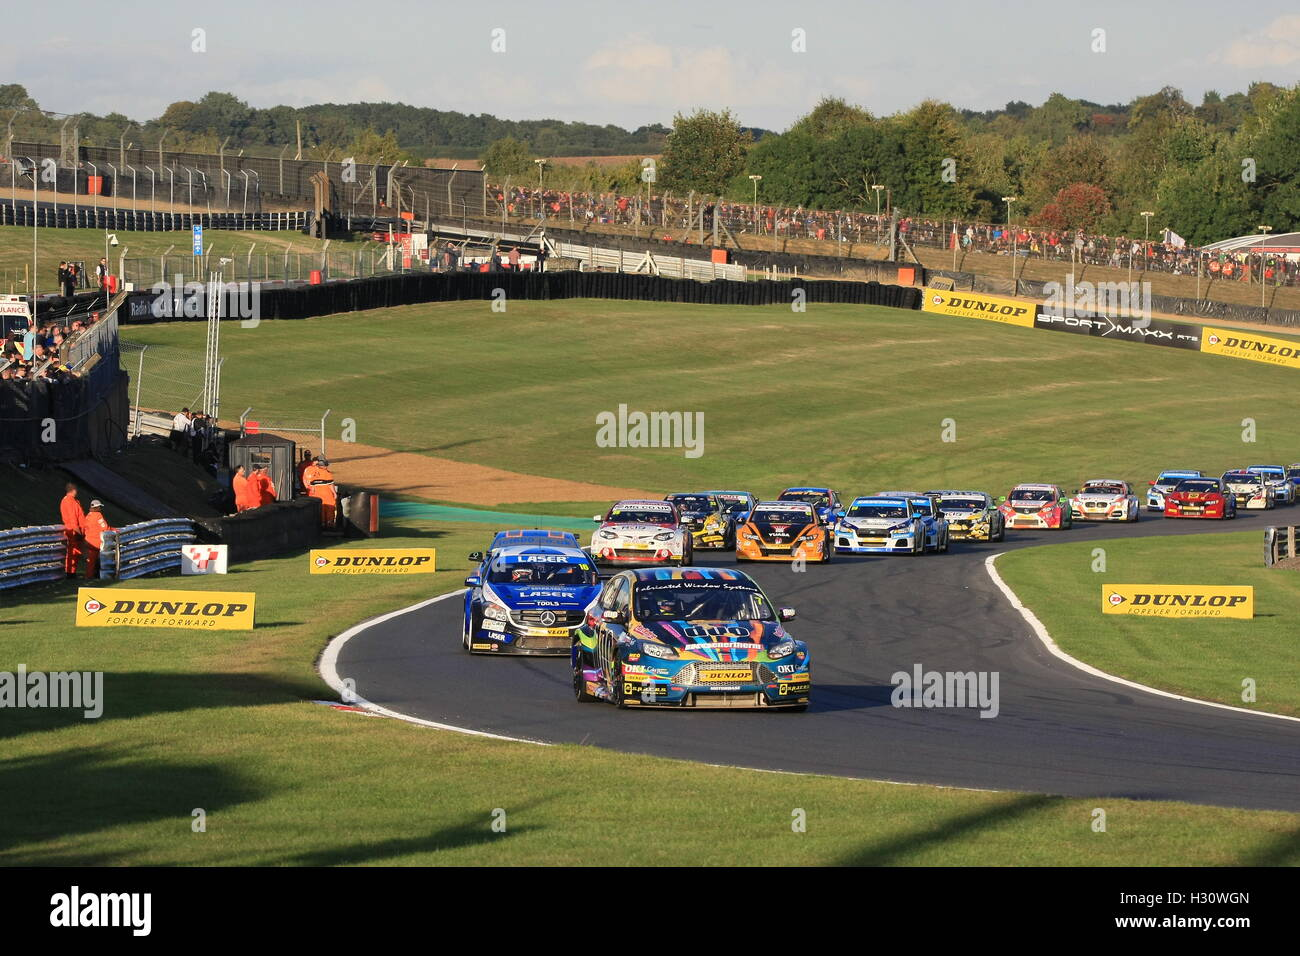 Action from the final round of the 2016 Dunlop MSA British Touring Car Championship (BTCC) at Brands Hatch circuit, - Stock Image